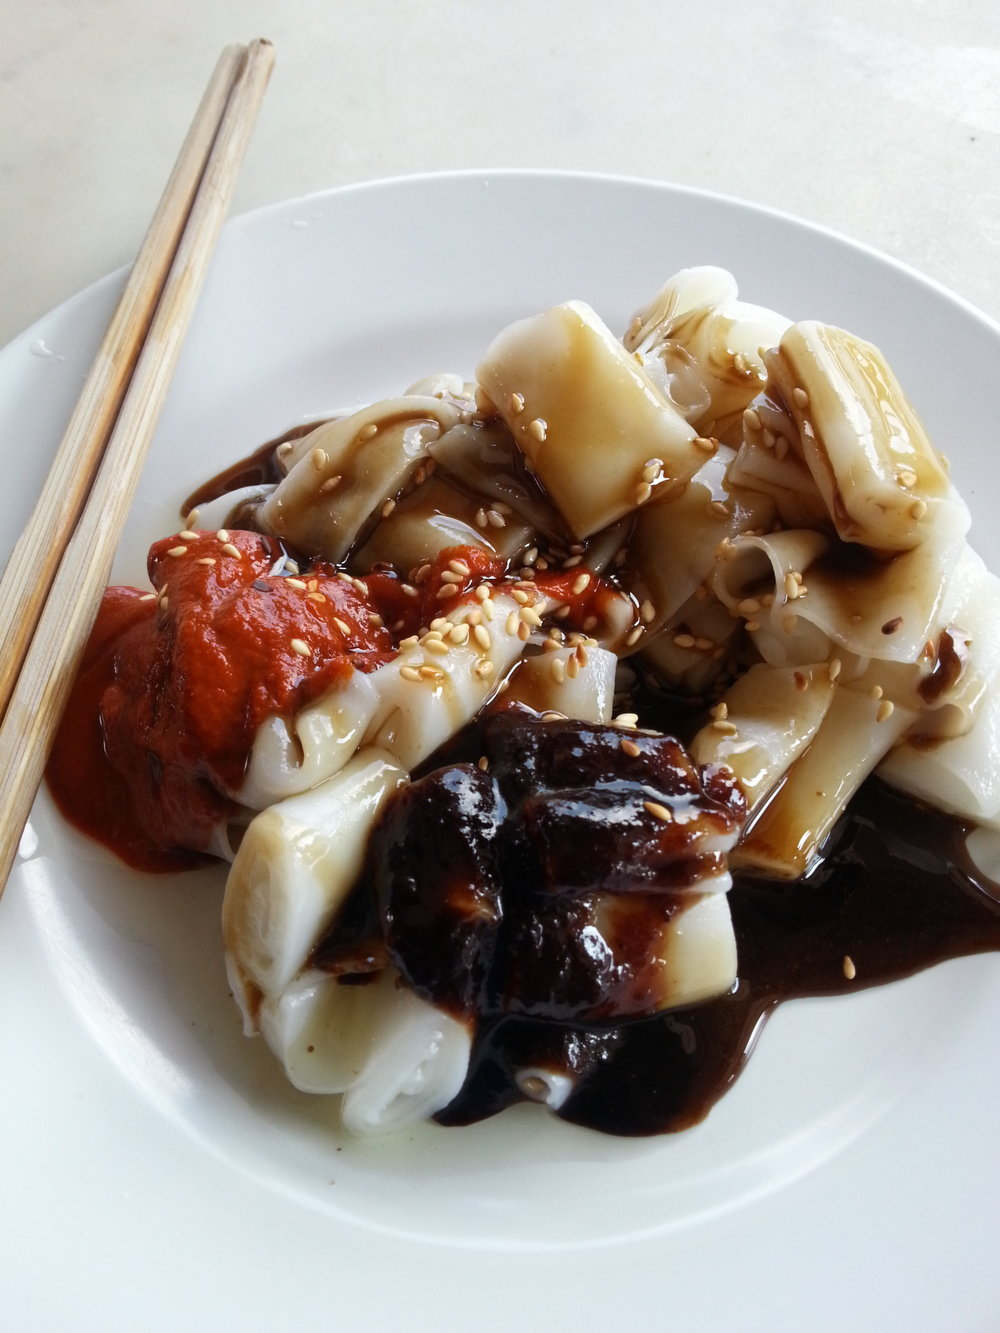 Chee Cheong Fun is flat rice noodles served with sweet, tangy, sour and soy sauces. You'll find this dish in Hong Kong and Kuala Lumpur as well, but in Penang we like to do it a little bit differently. The local version is served with thick sauces that includes either a sweet chili sauce or a spicy sambal. This place is just around the corner from Chowrasta Market, on Lebuh Kimberley.